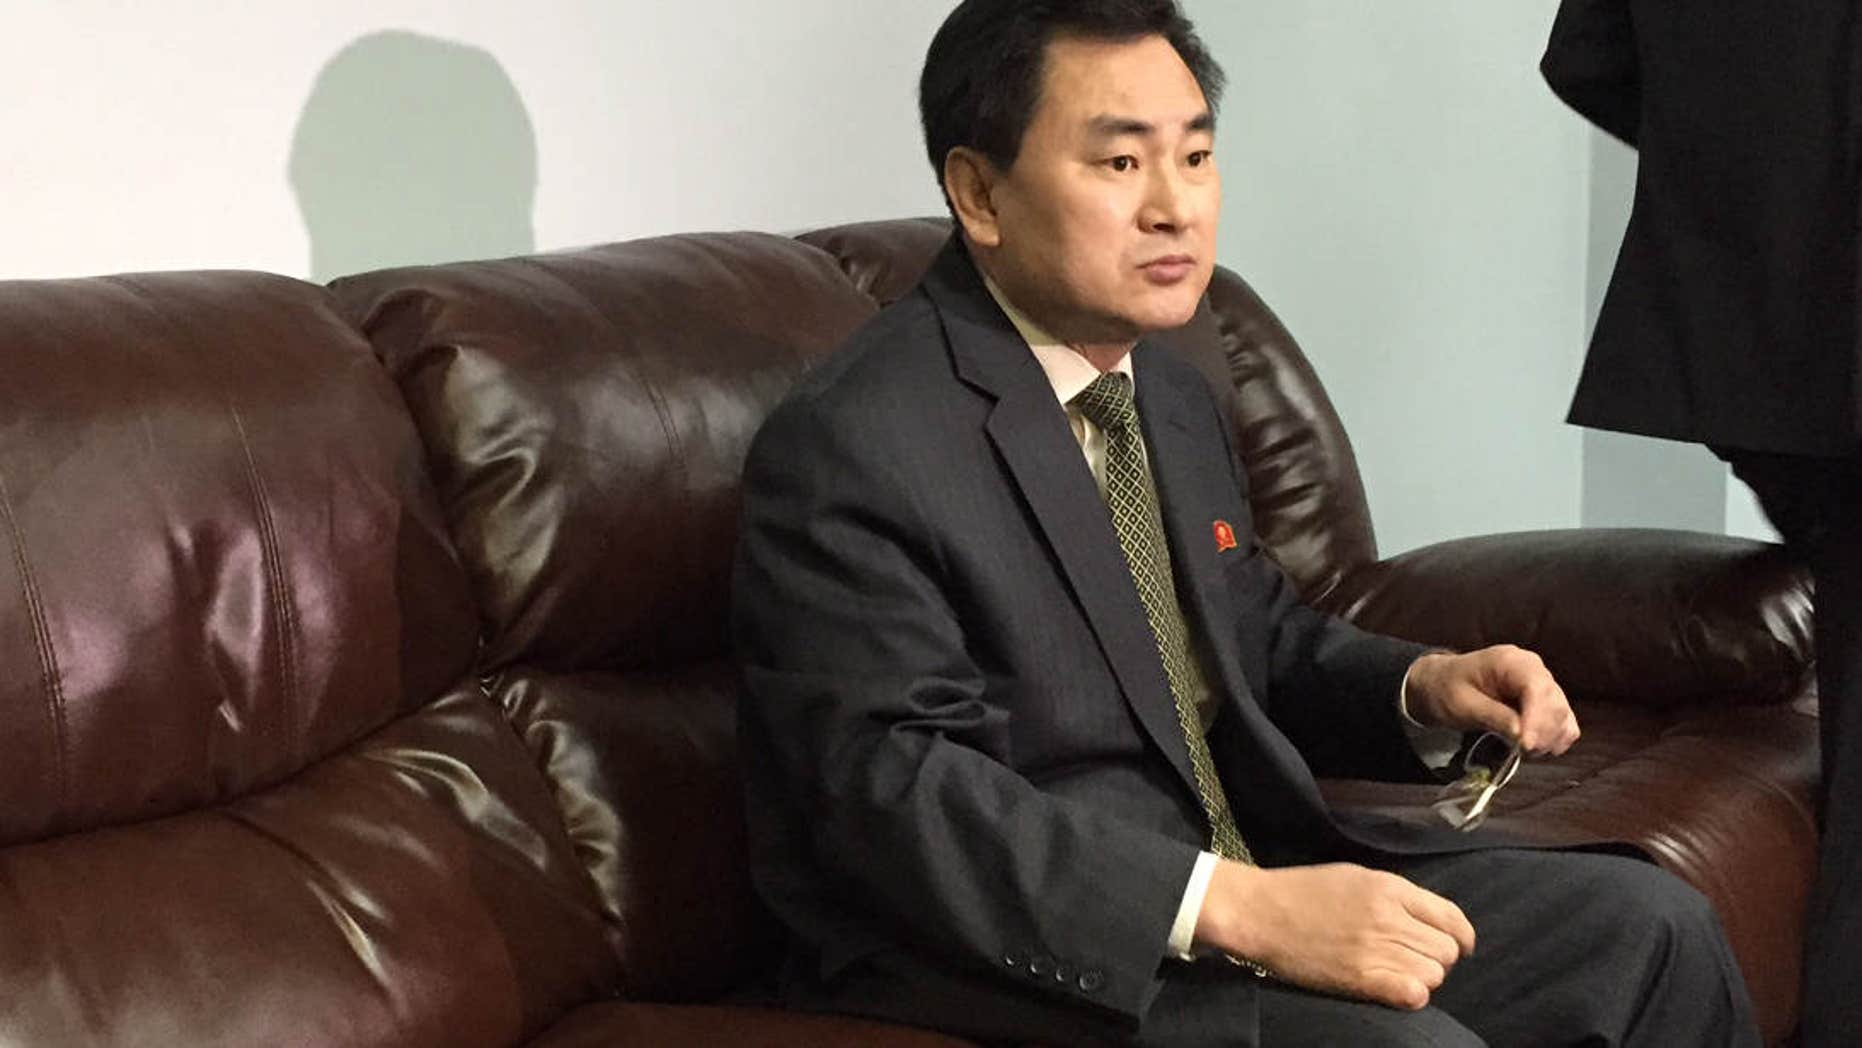 April 8, 2015: North Korea's deputy permanent representative to the United Nations, An Myong Hun, waits to speak to reporters at North Korea's U.N. mission in New York.